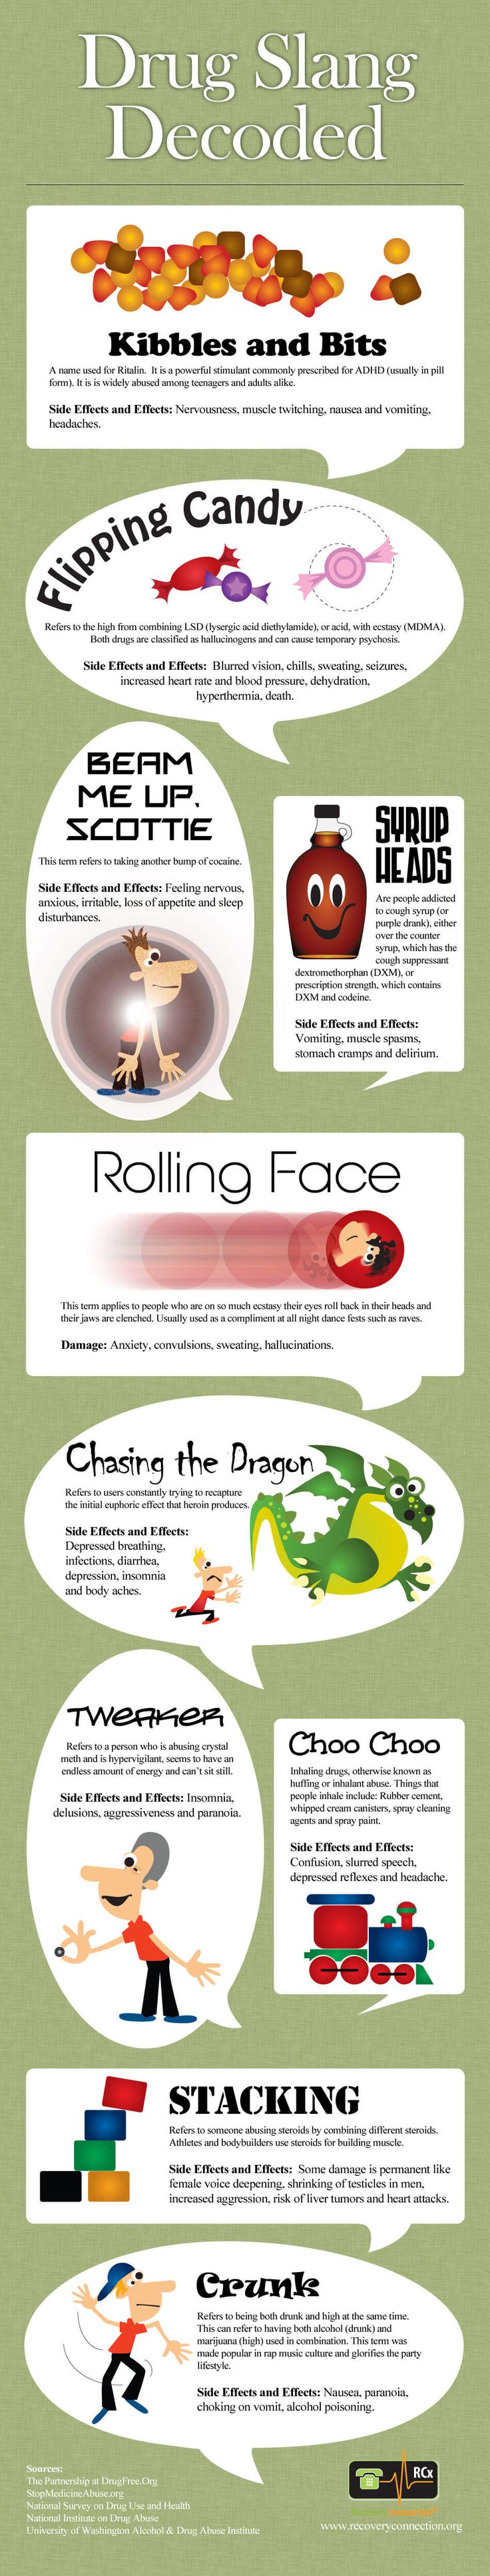 What are the clever drug slang terms used by drug users? Drug Slang Decoded infographic unlocks the slang terms for drugs most commonly abused and their side effects.